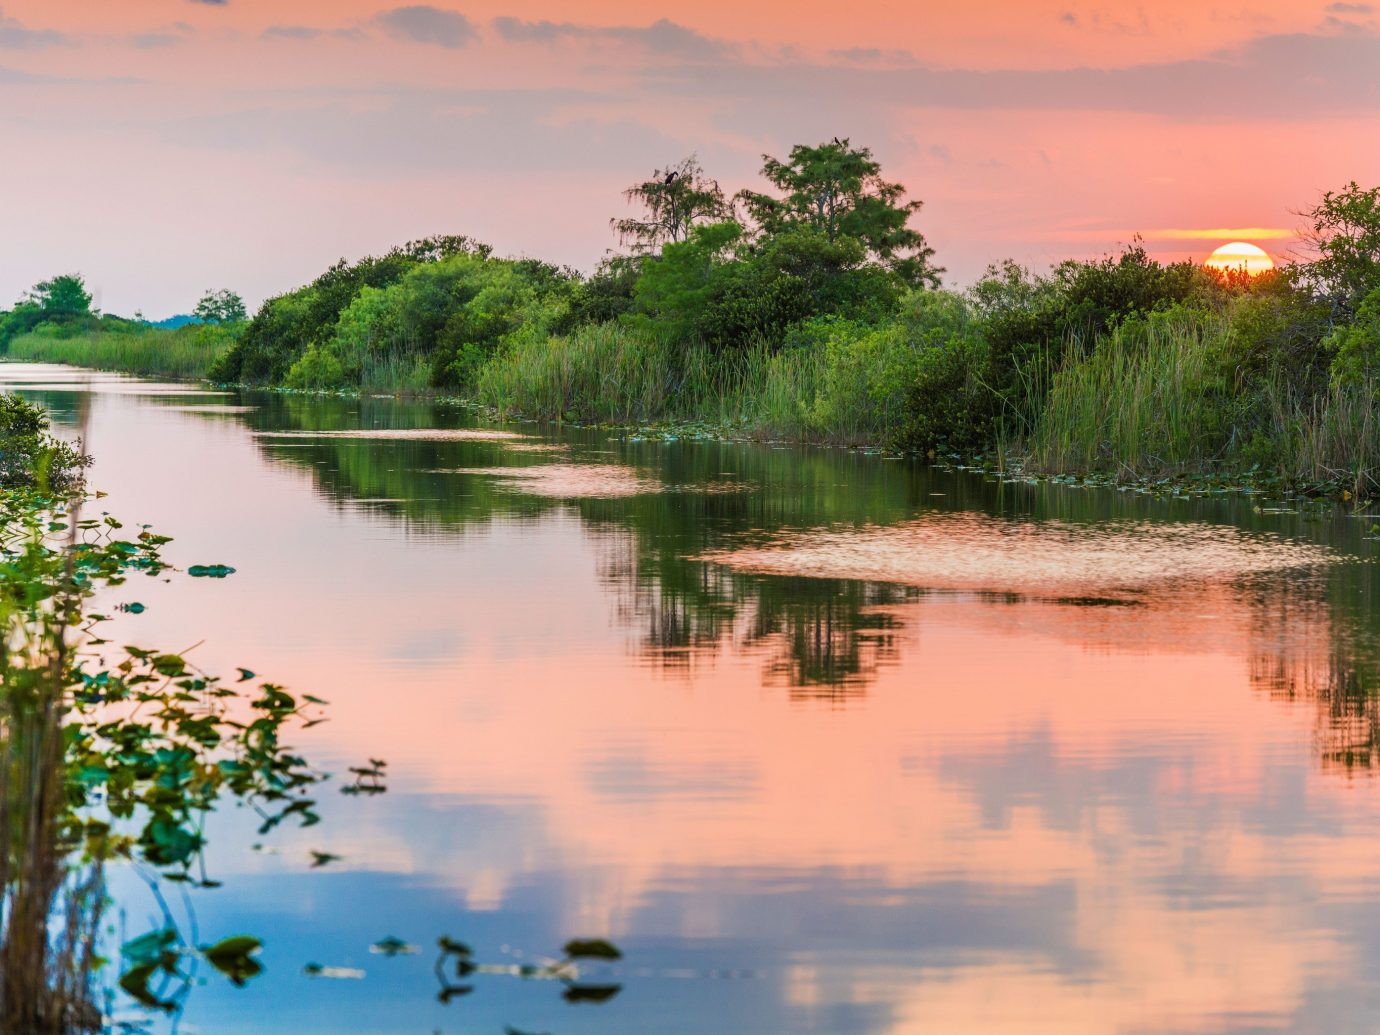 National Parks Outdoors + Adventure Trip Ideas water outdoor tree Nature River habitat reflection Lake atmospheric phenomenon natural environment wilderness body of water morning shore pond woody plant landscape wetland surrounded Sunset rural area marsh reservoir evening dawn dusk setting several